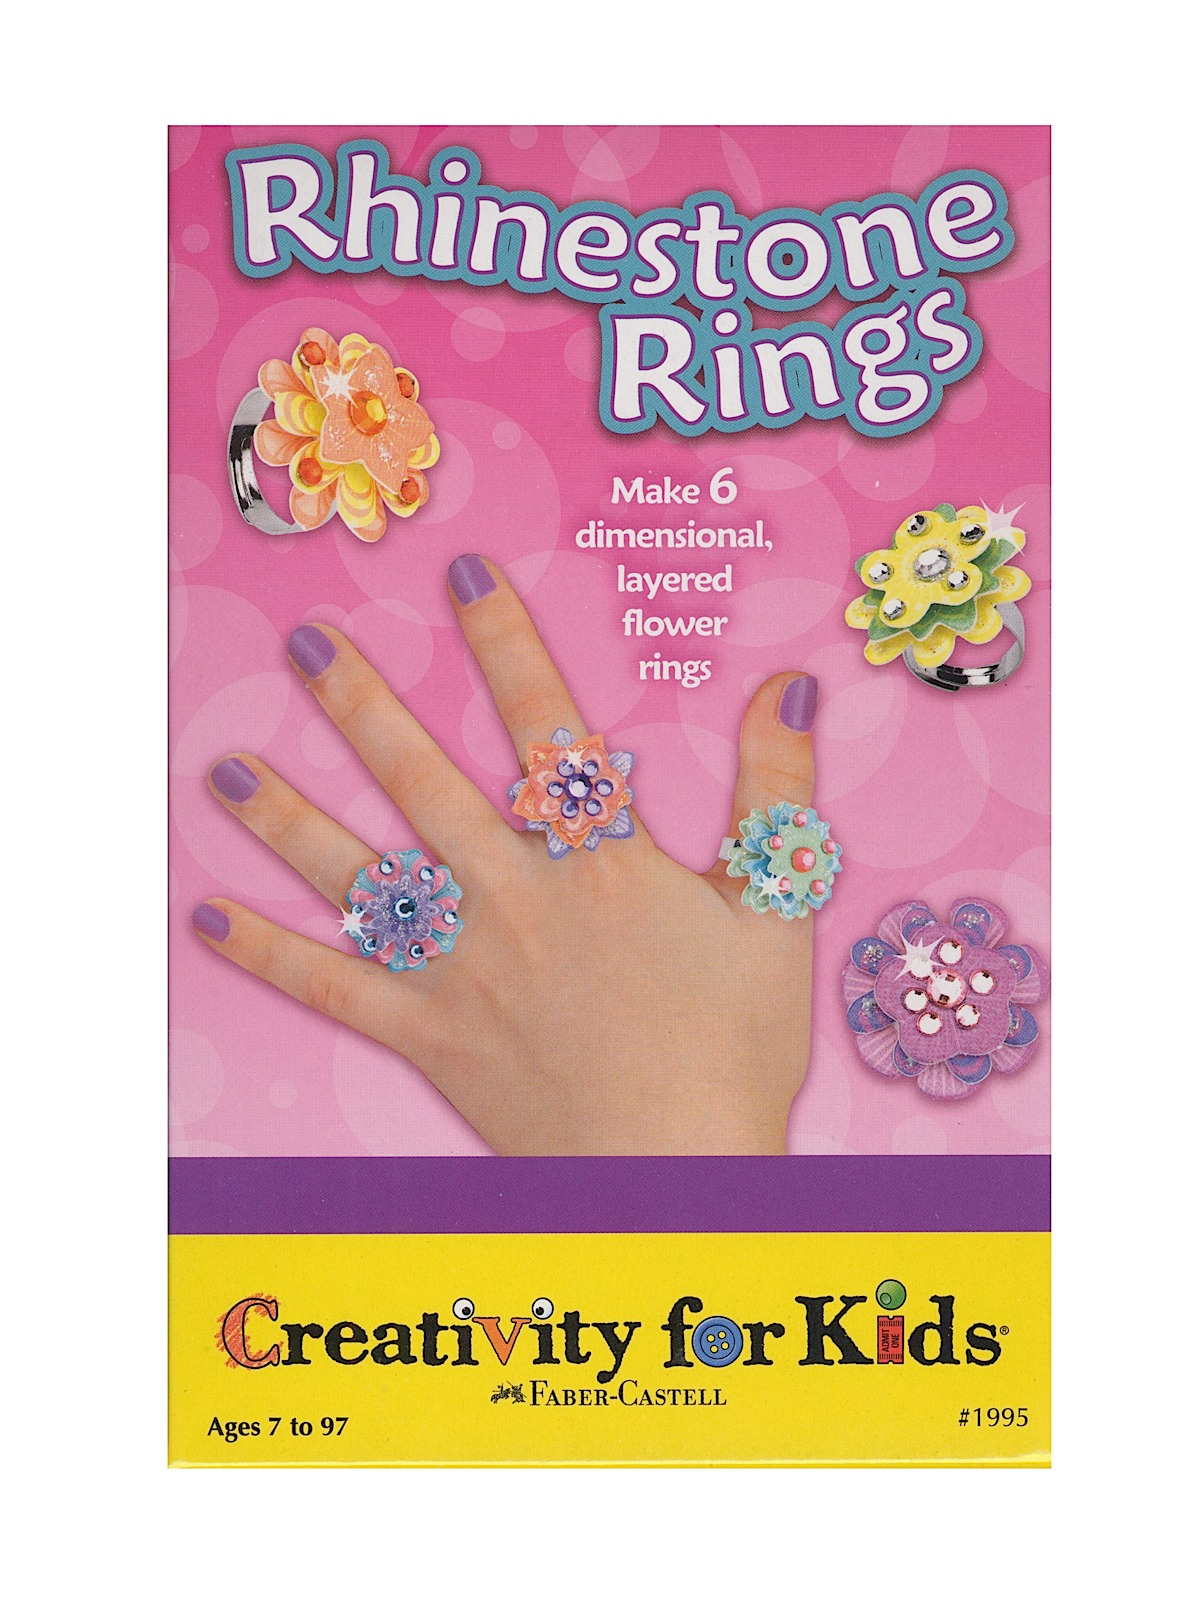 Rhinestone Rings Mini Kit